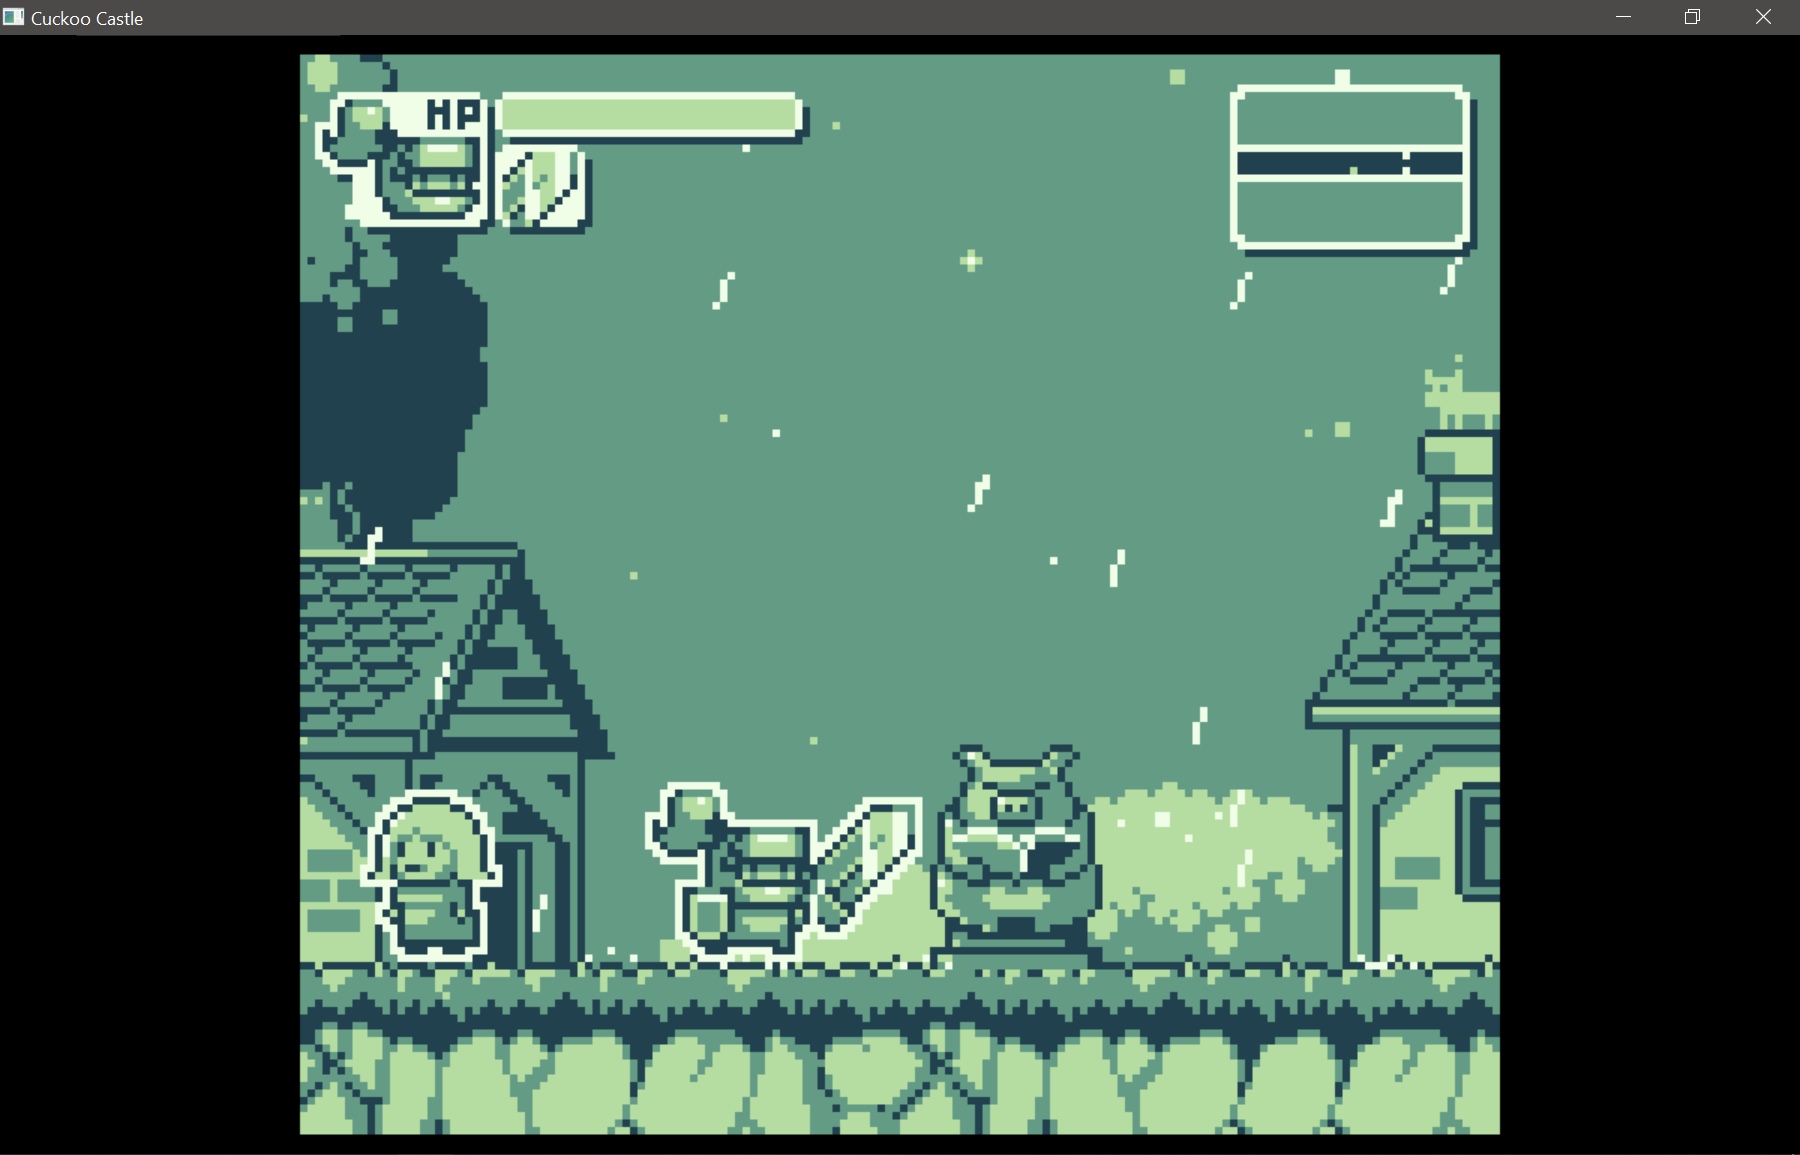 A small knightt standing next to a pig statue. The game looks like a slightly more modern gameboy game.